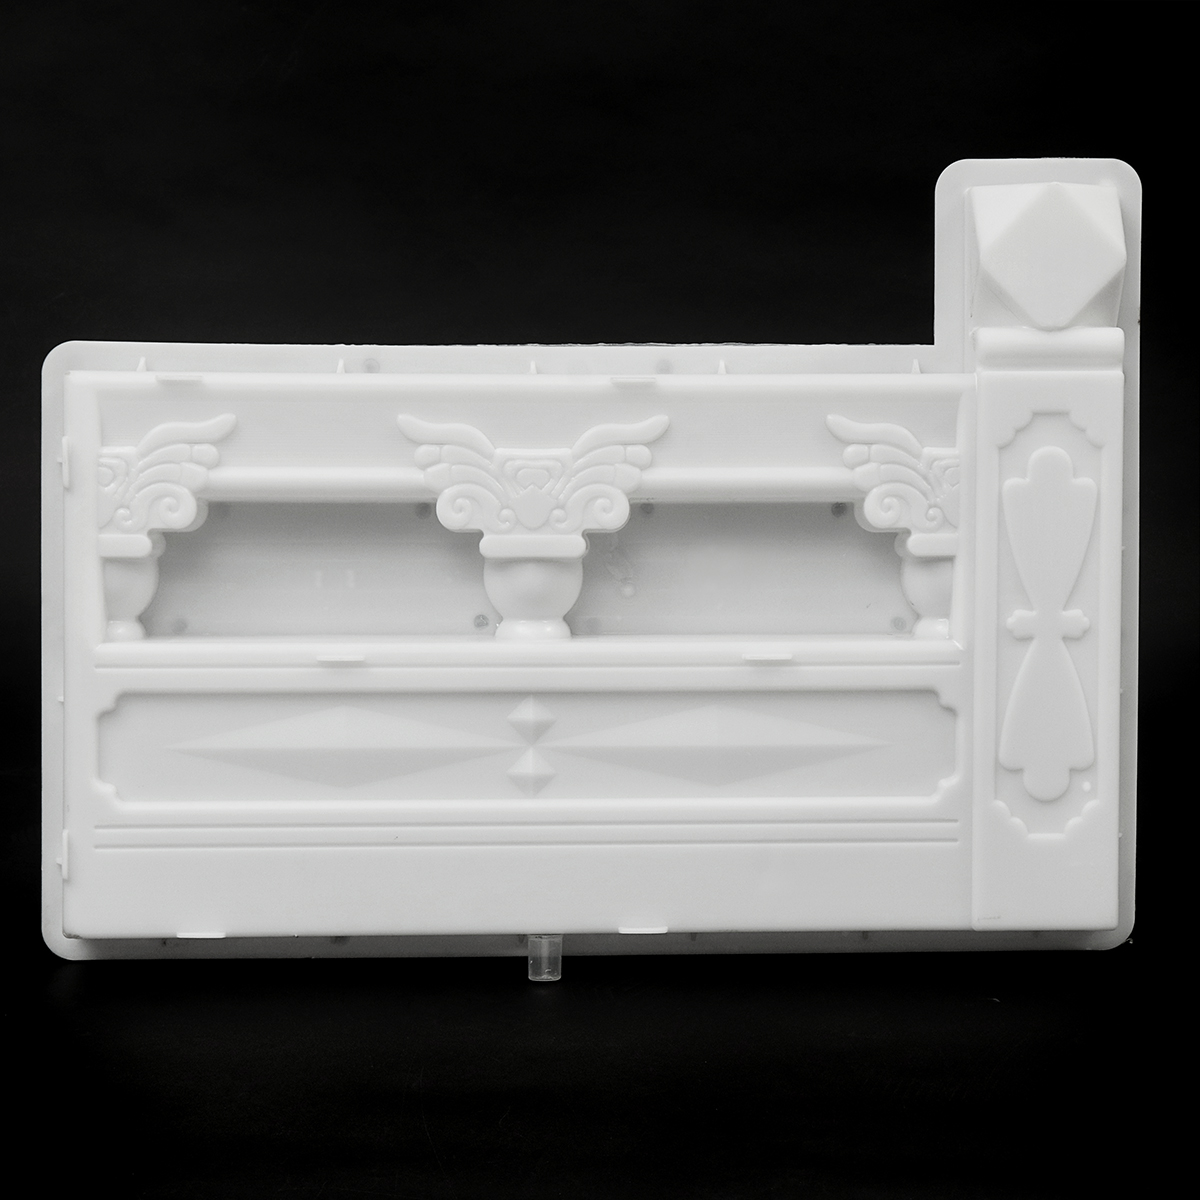 NEW DIY Concrete Mold Fence Plastic Mold Flower Pool Brick Garden Courtyard Hole for Garden Building Supply Paving Mold